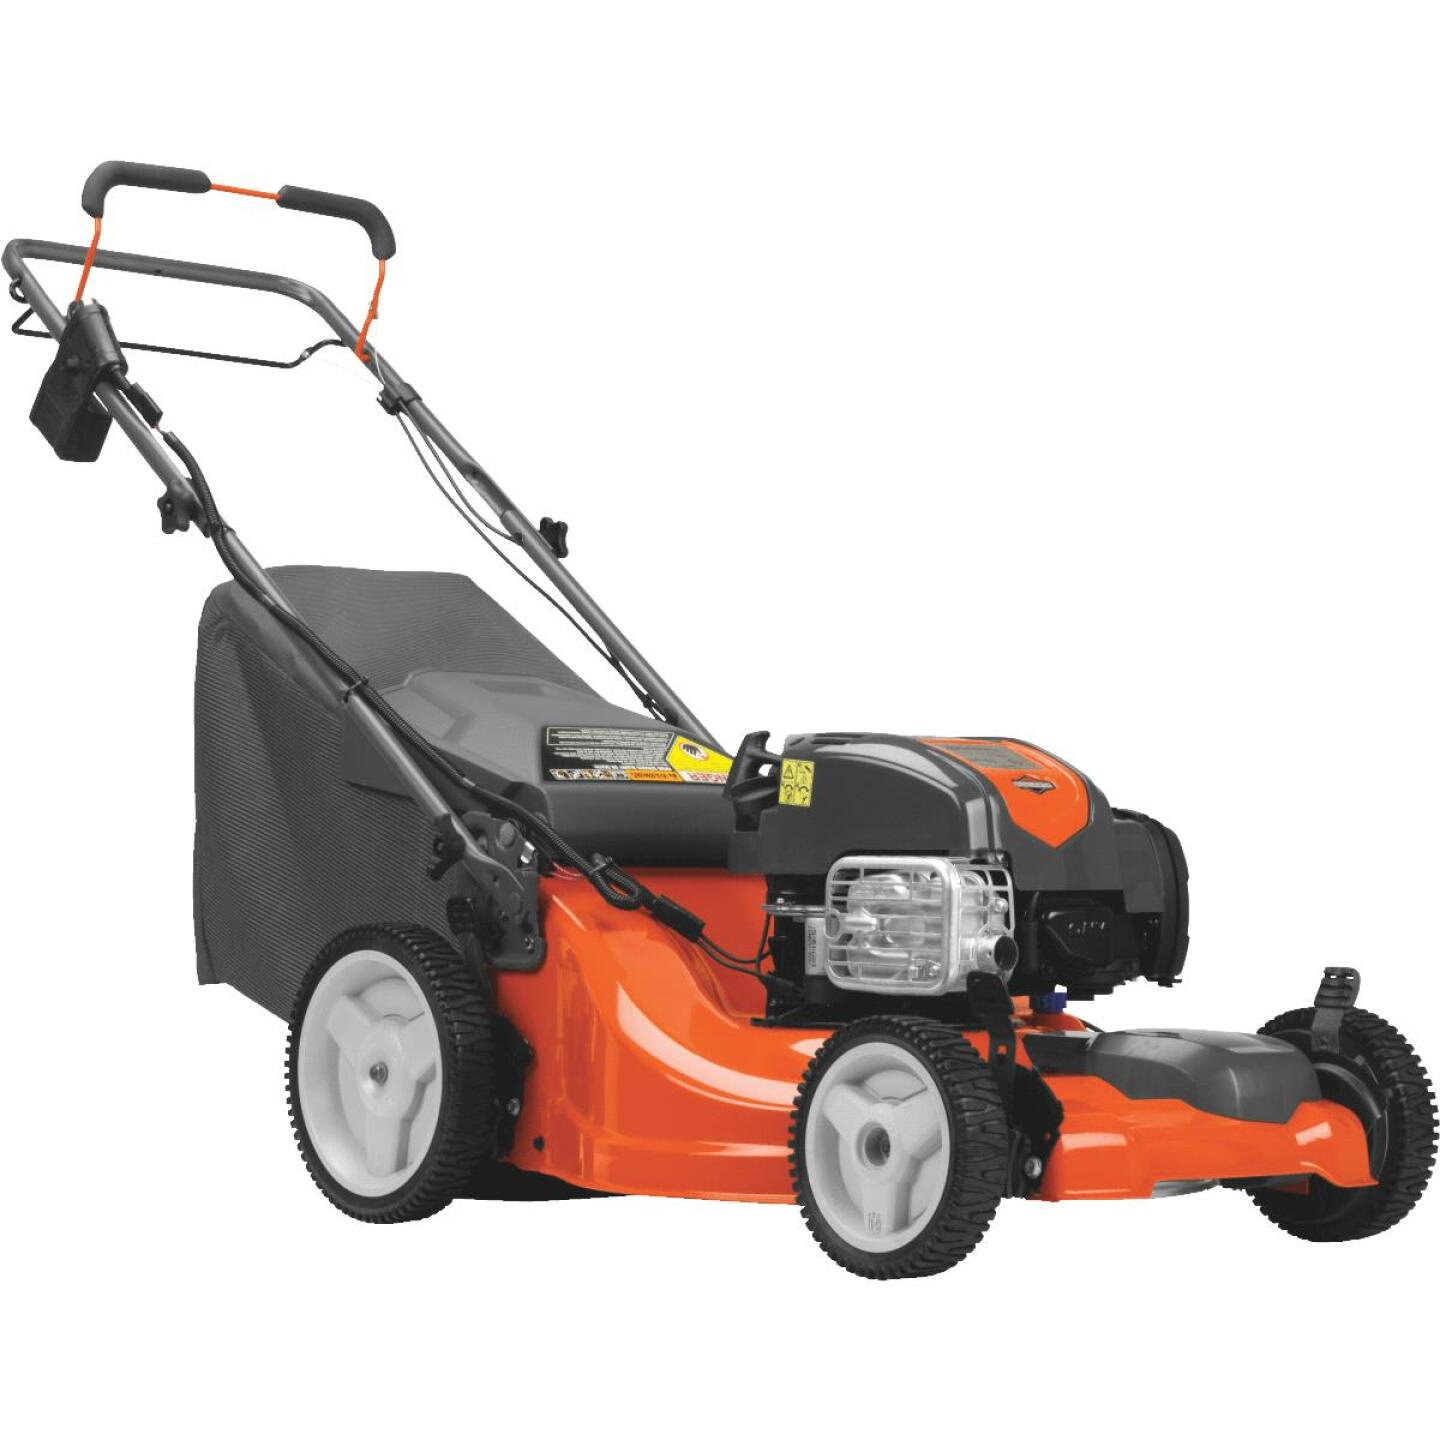 Husqvarna LC221FHE 21 In. 163cc 3-In-1 Self-Propelled Gas Lawn Mower Image 1